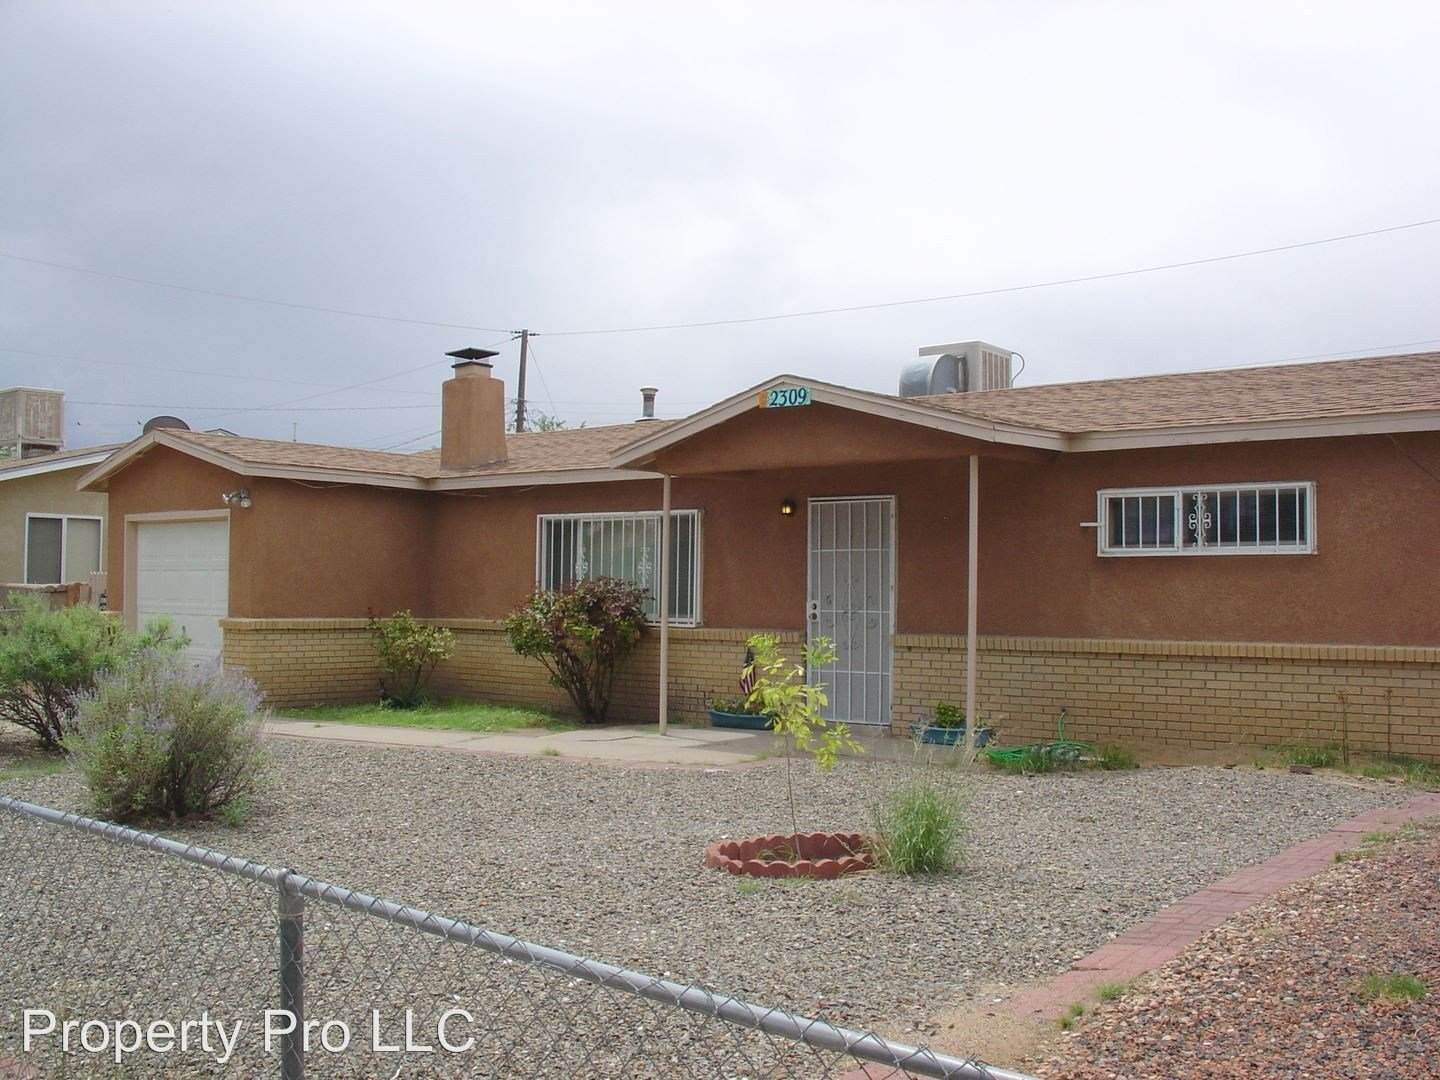 Best 2309 Hurley Dr Nw Albuquerque Nm 87120 3 Bedroom House With Pictures